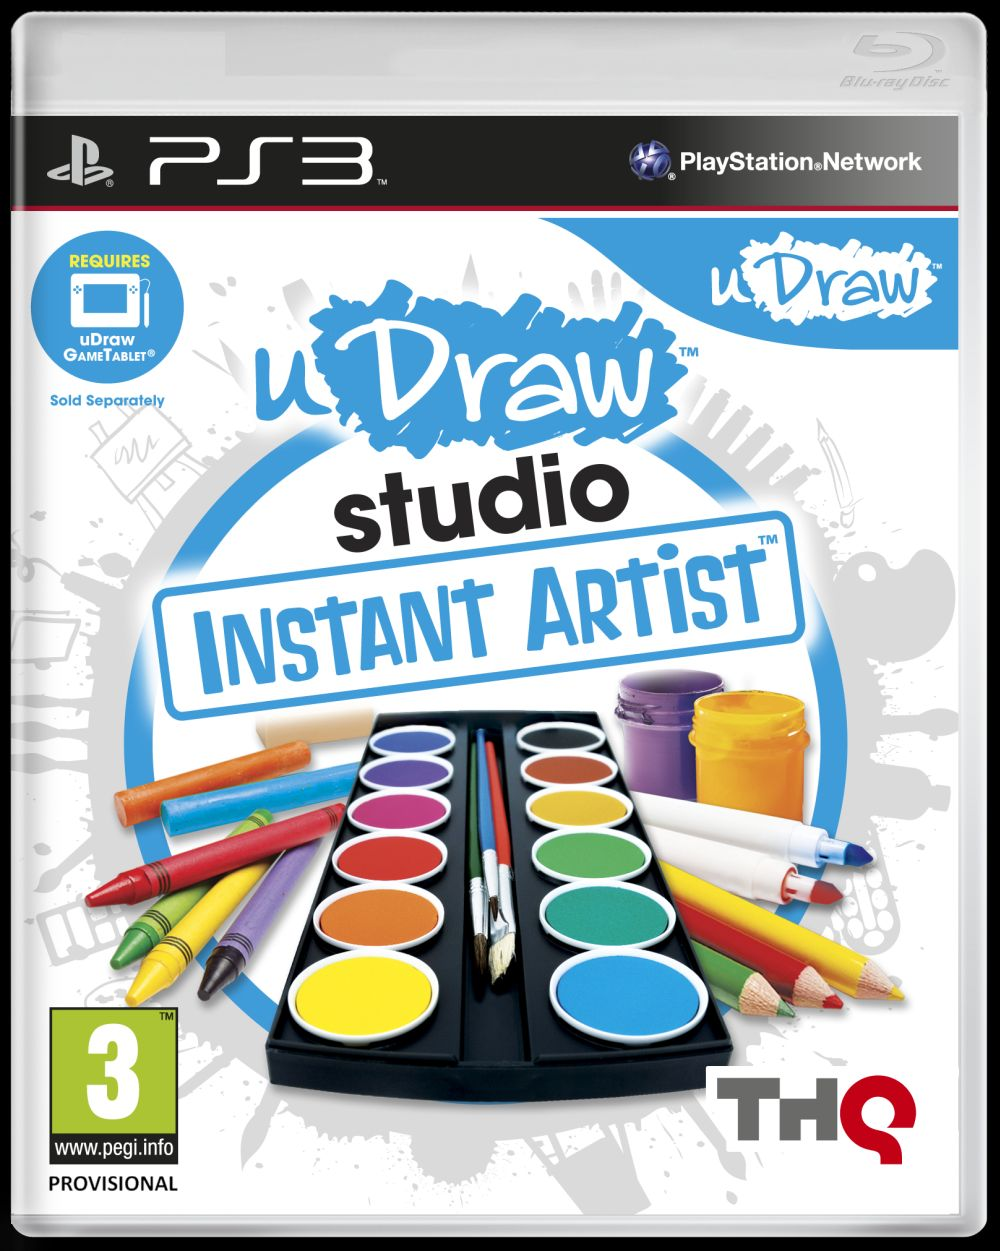 uDRAW INSTANT ARTIST - GAME ONLY